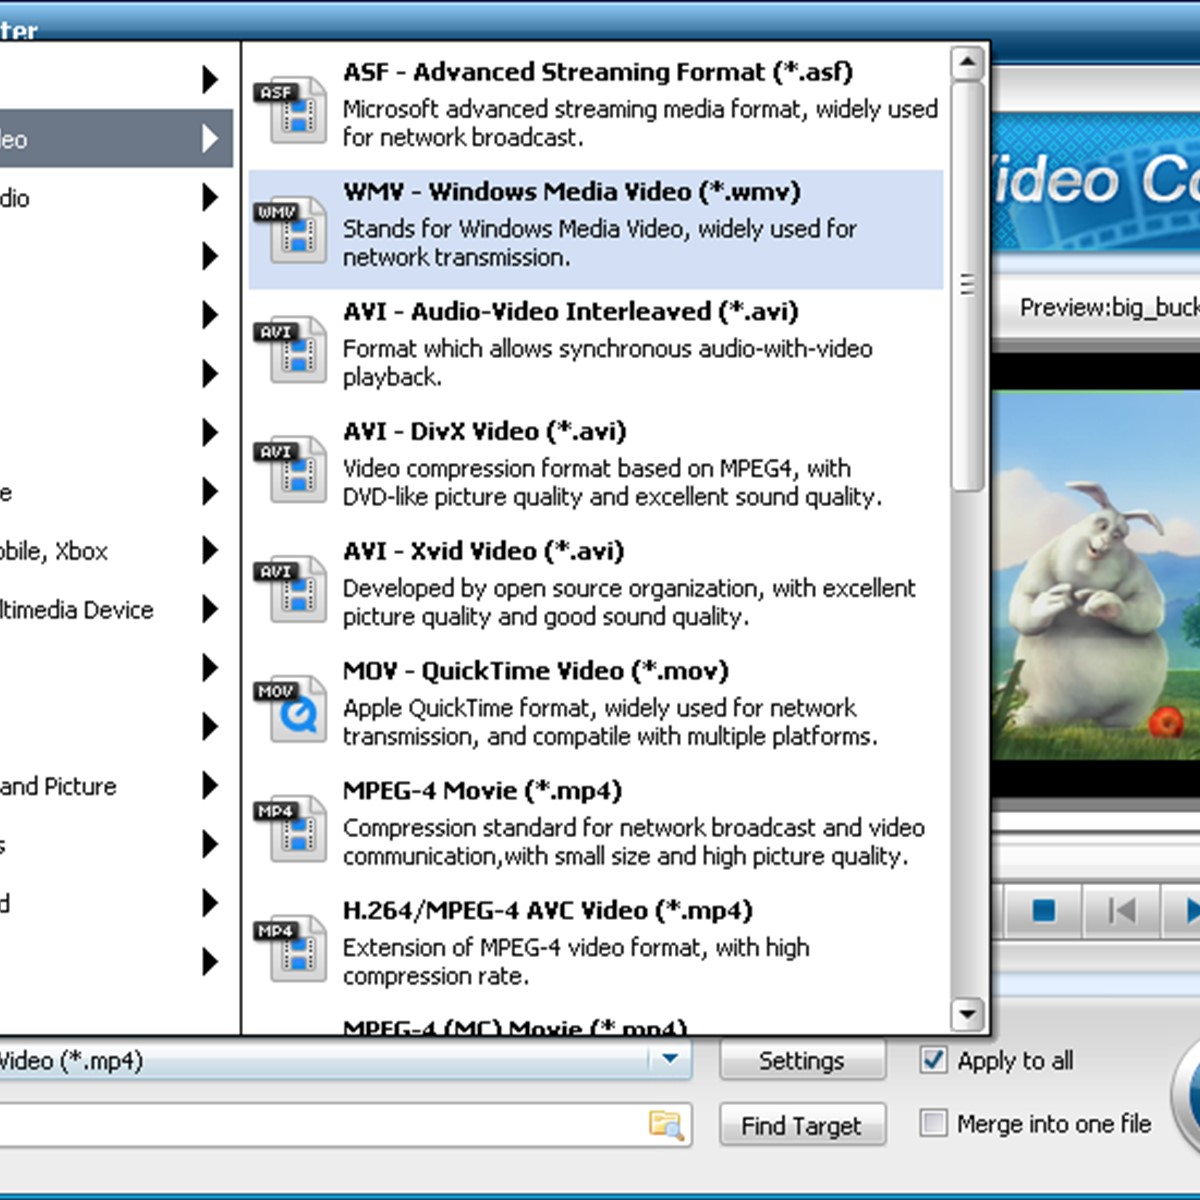 iWisoft Free Video Converter Alternatives and Similar